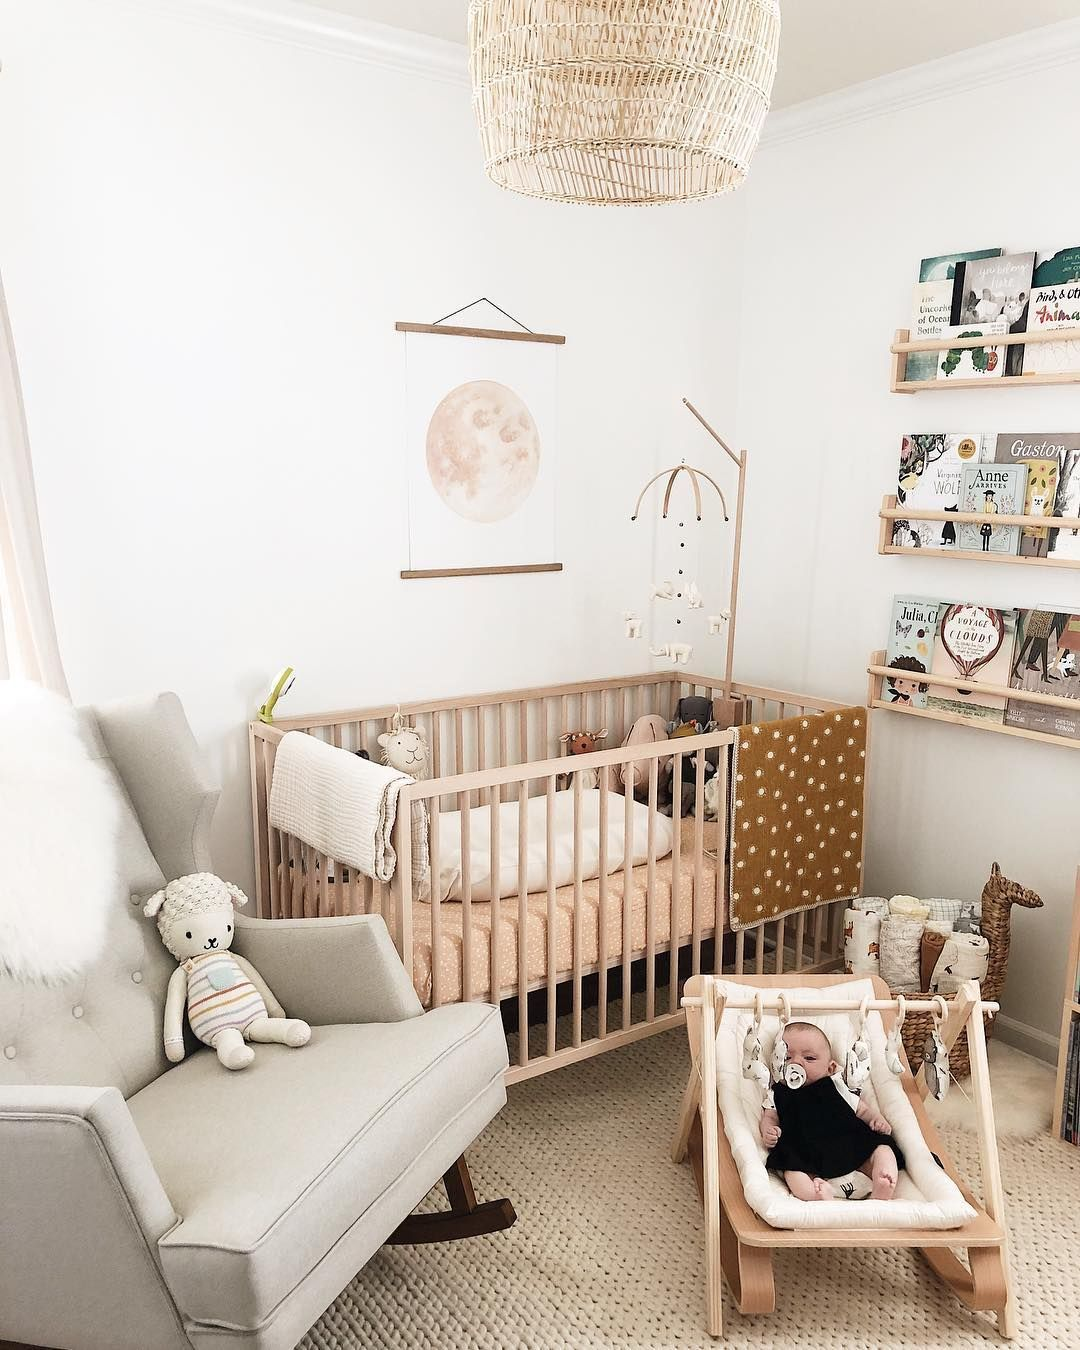 Amazing Nursery Decorating Ideas - Baby Room Design For Chic Parent Renovation (With Images)   Nursery Baby Room, Baby Room Decor, Baby Room Neutral